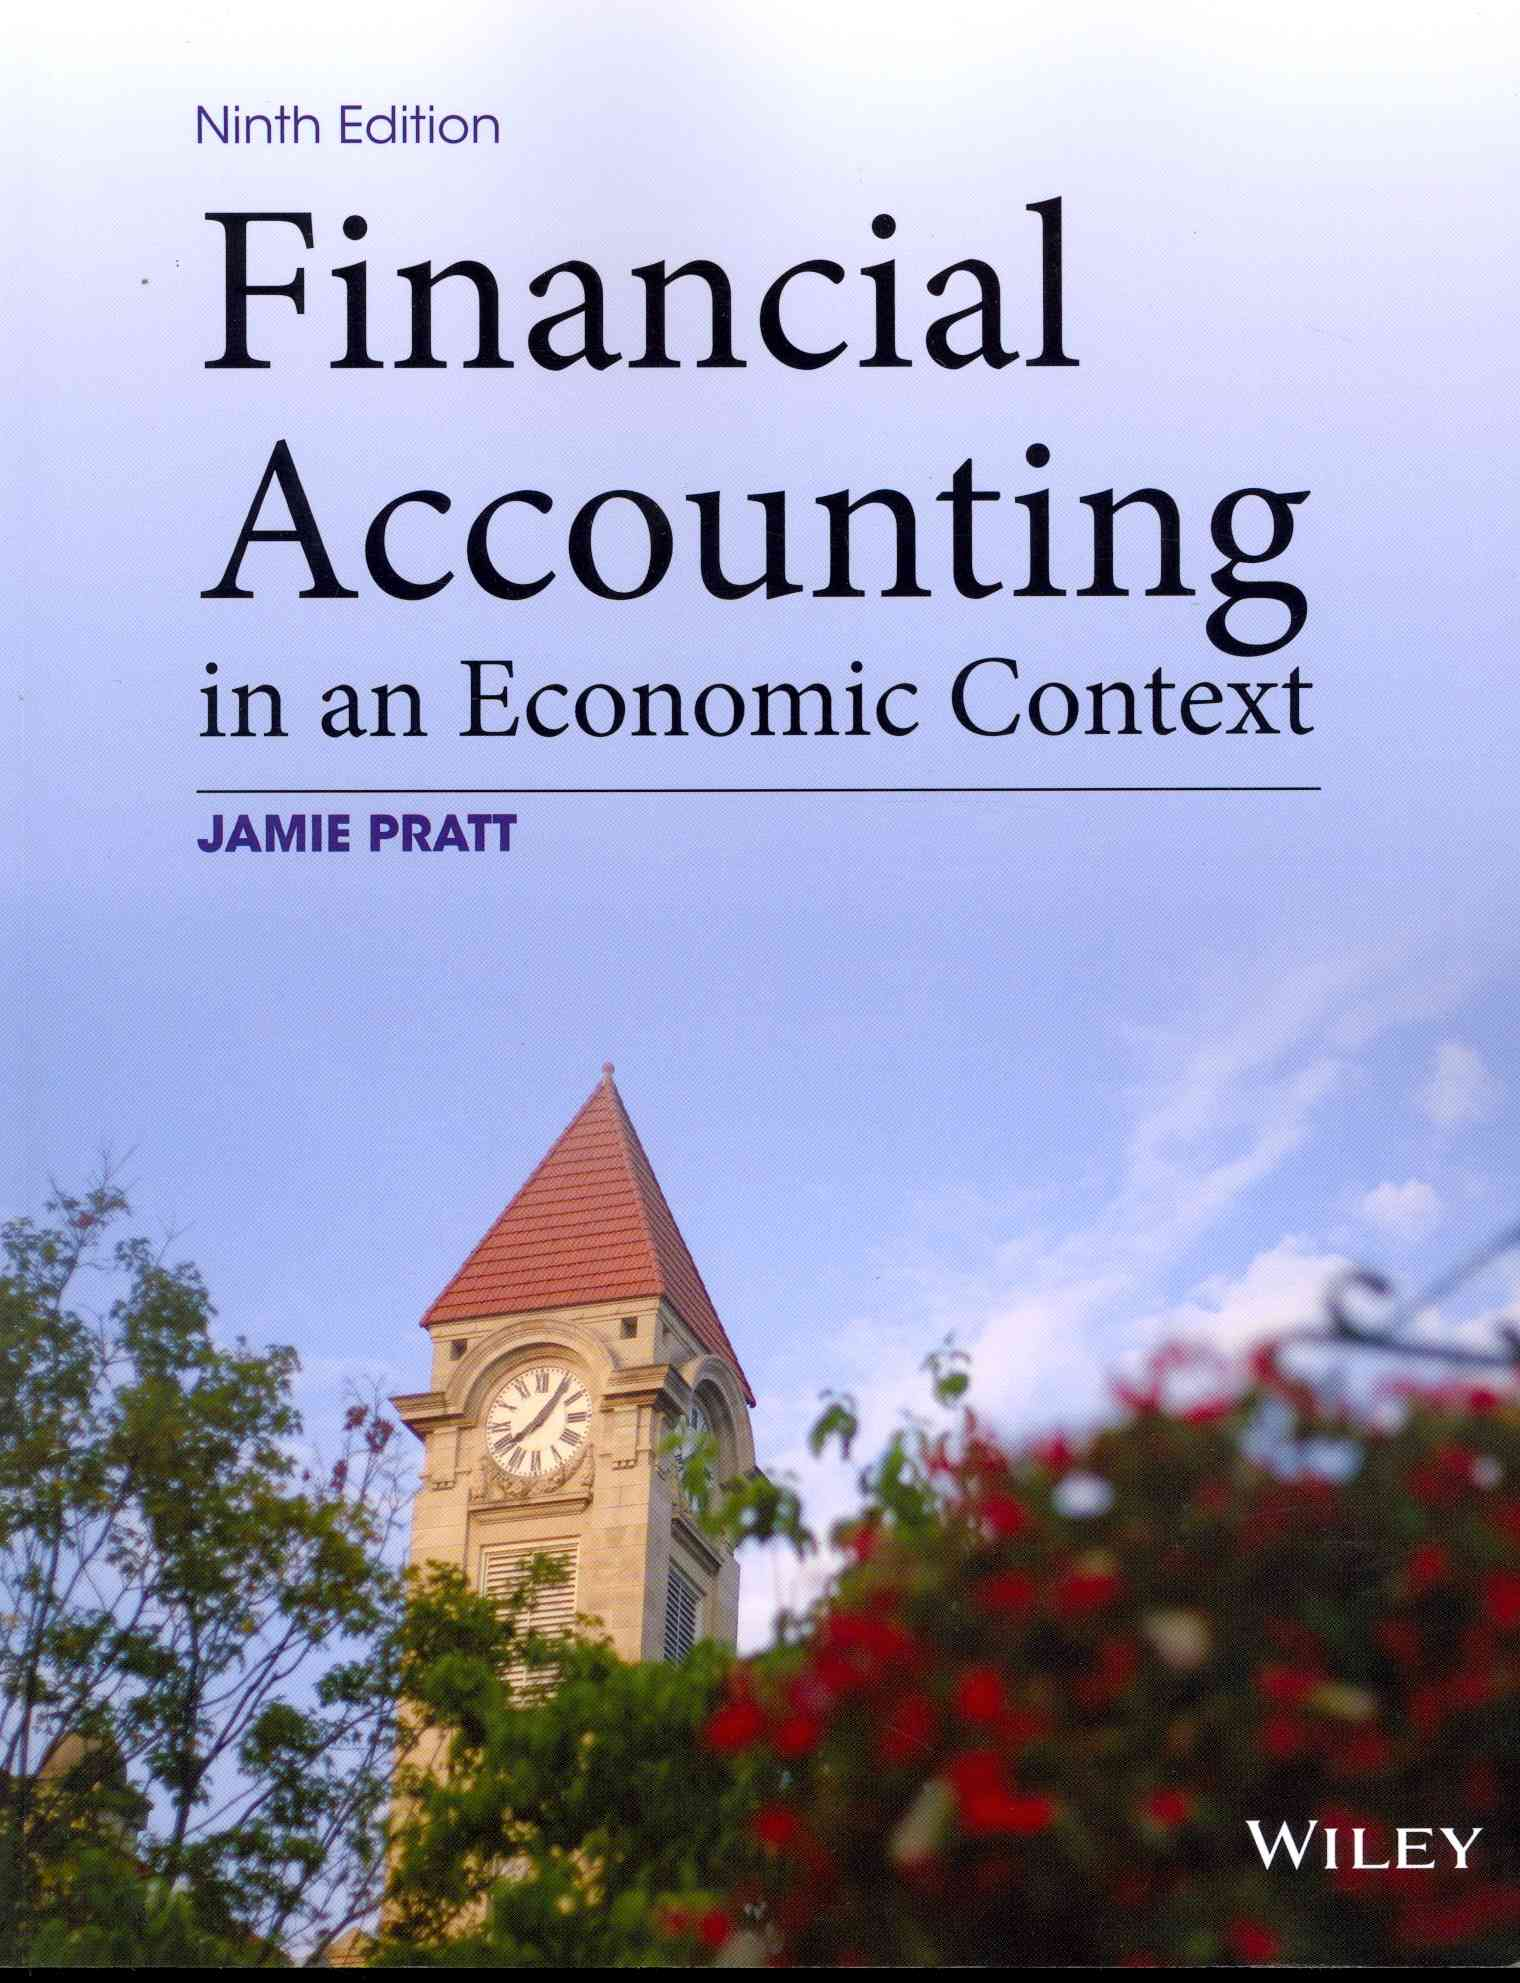 Financial Accounting in an Economic Context By Pratt, Jamie